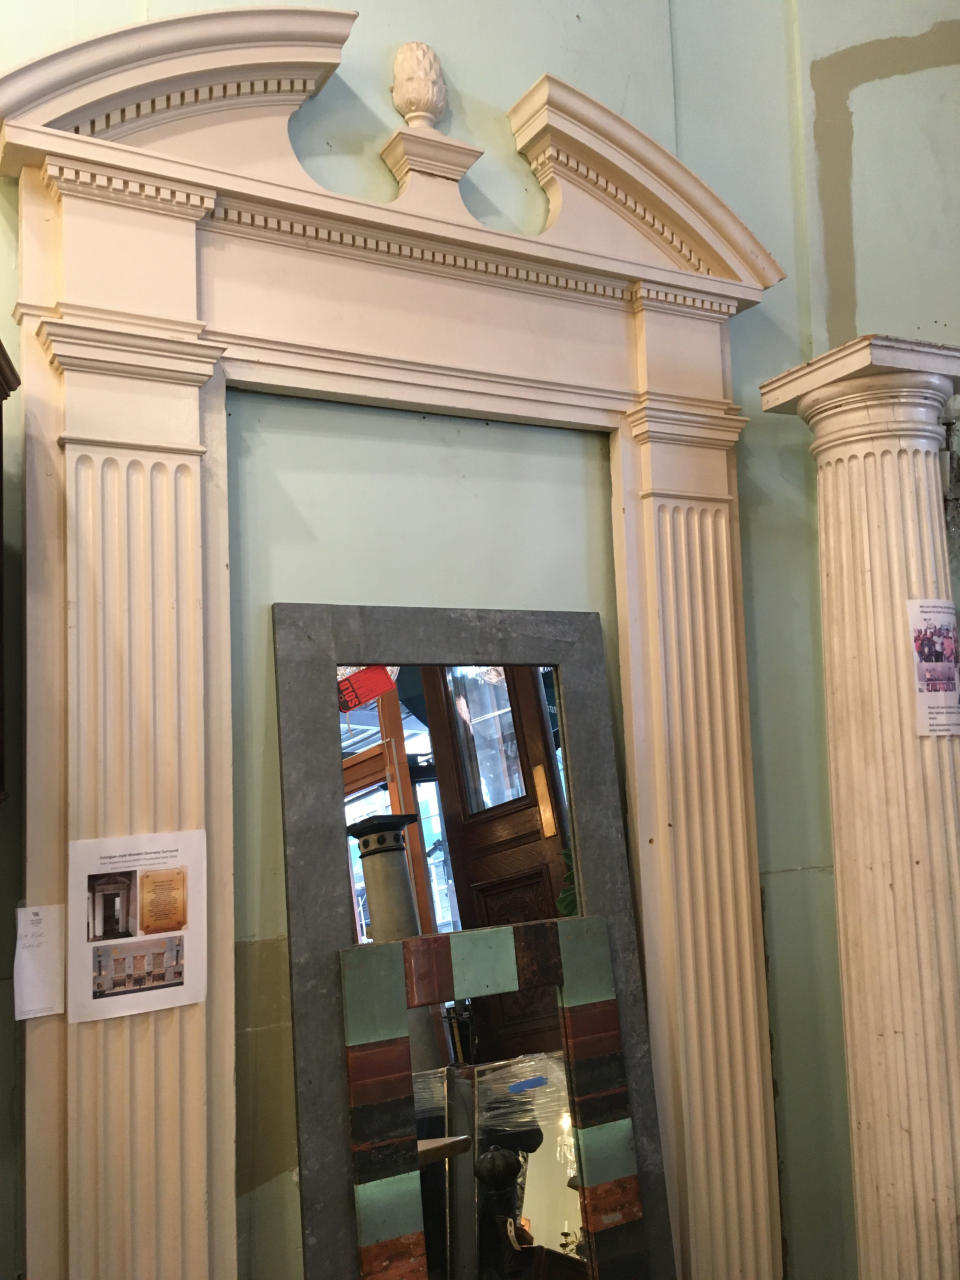 """This Oct. 15, 2019 photo shows the salvaged doorframe of the Waldorf-Astoria Hotel's presidential suite, available for sale at Olde Good Things salvage store in New York. Two of the hottest trends in home decor are sustainability and authenticity. """"It's about both history and sustainability,"""" says Madeline Beauchamp of Olde Good Things, one of the oldest architectural salvage businesses in the country, with one shop in Los Angeles, another in Scranton, Pennsylvania, two stores in New York, and a flagship store to open soon in Midtown Manhattan. (Katherine Roth via AP)"""